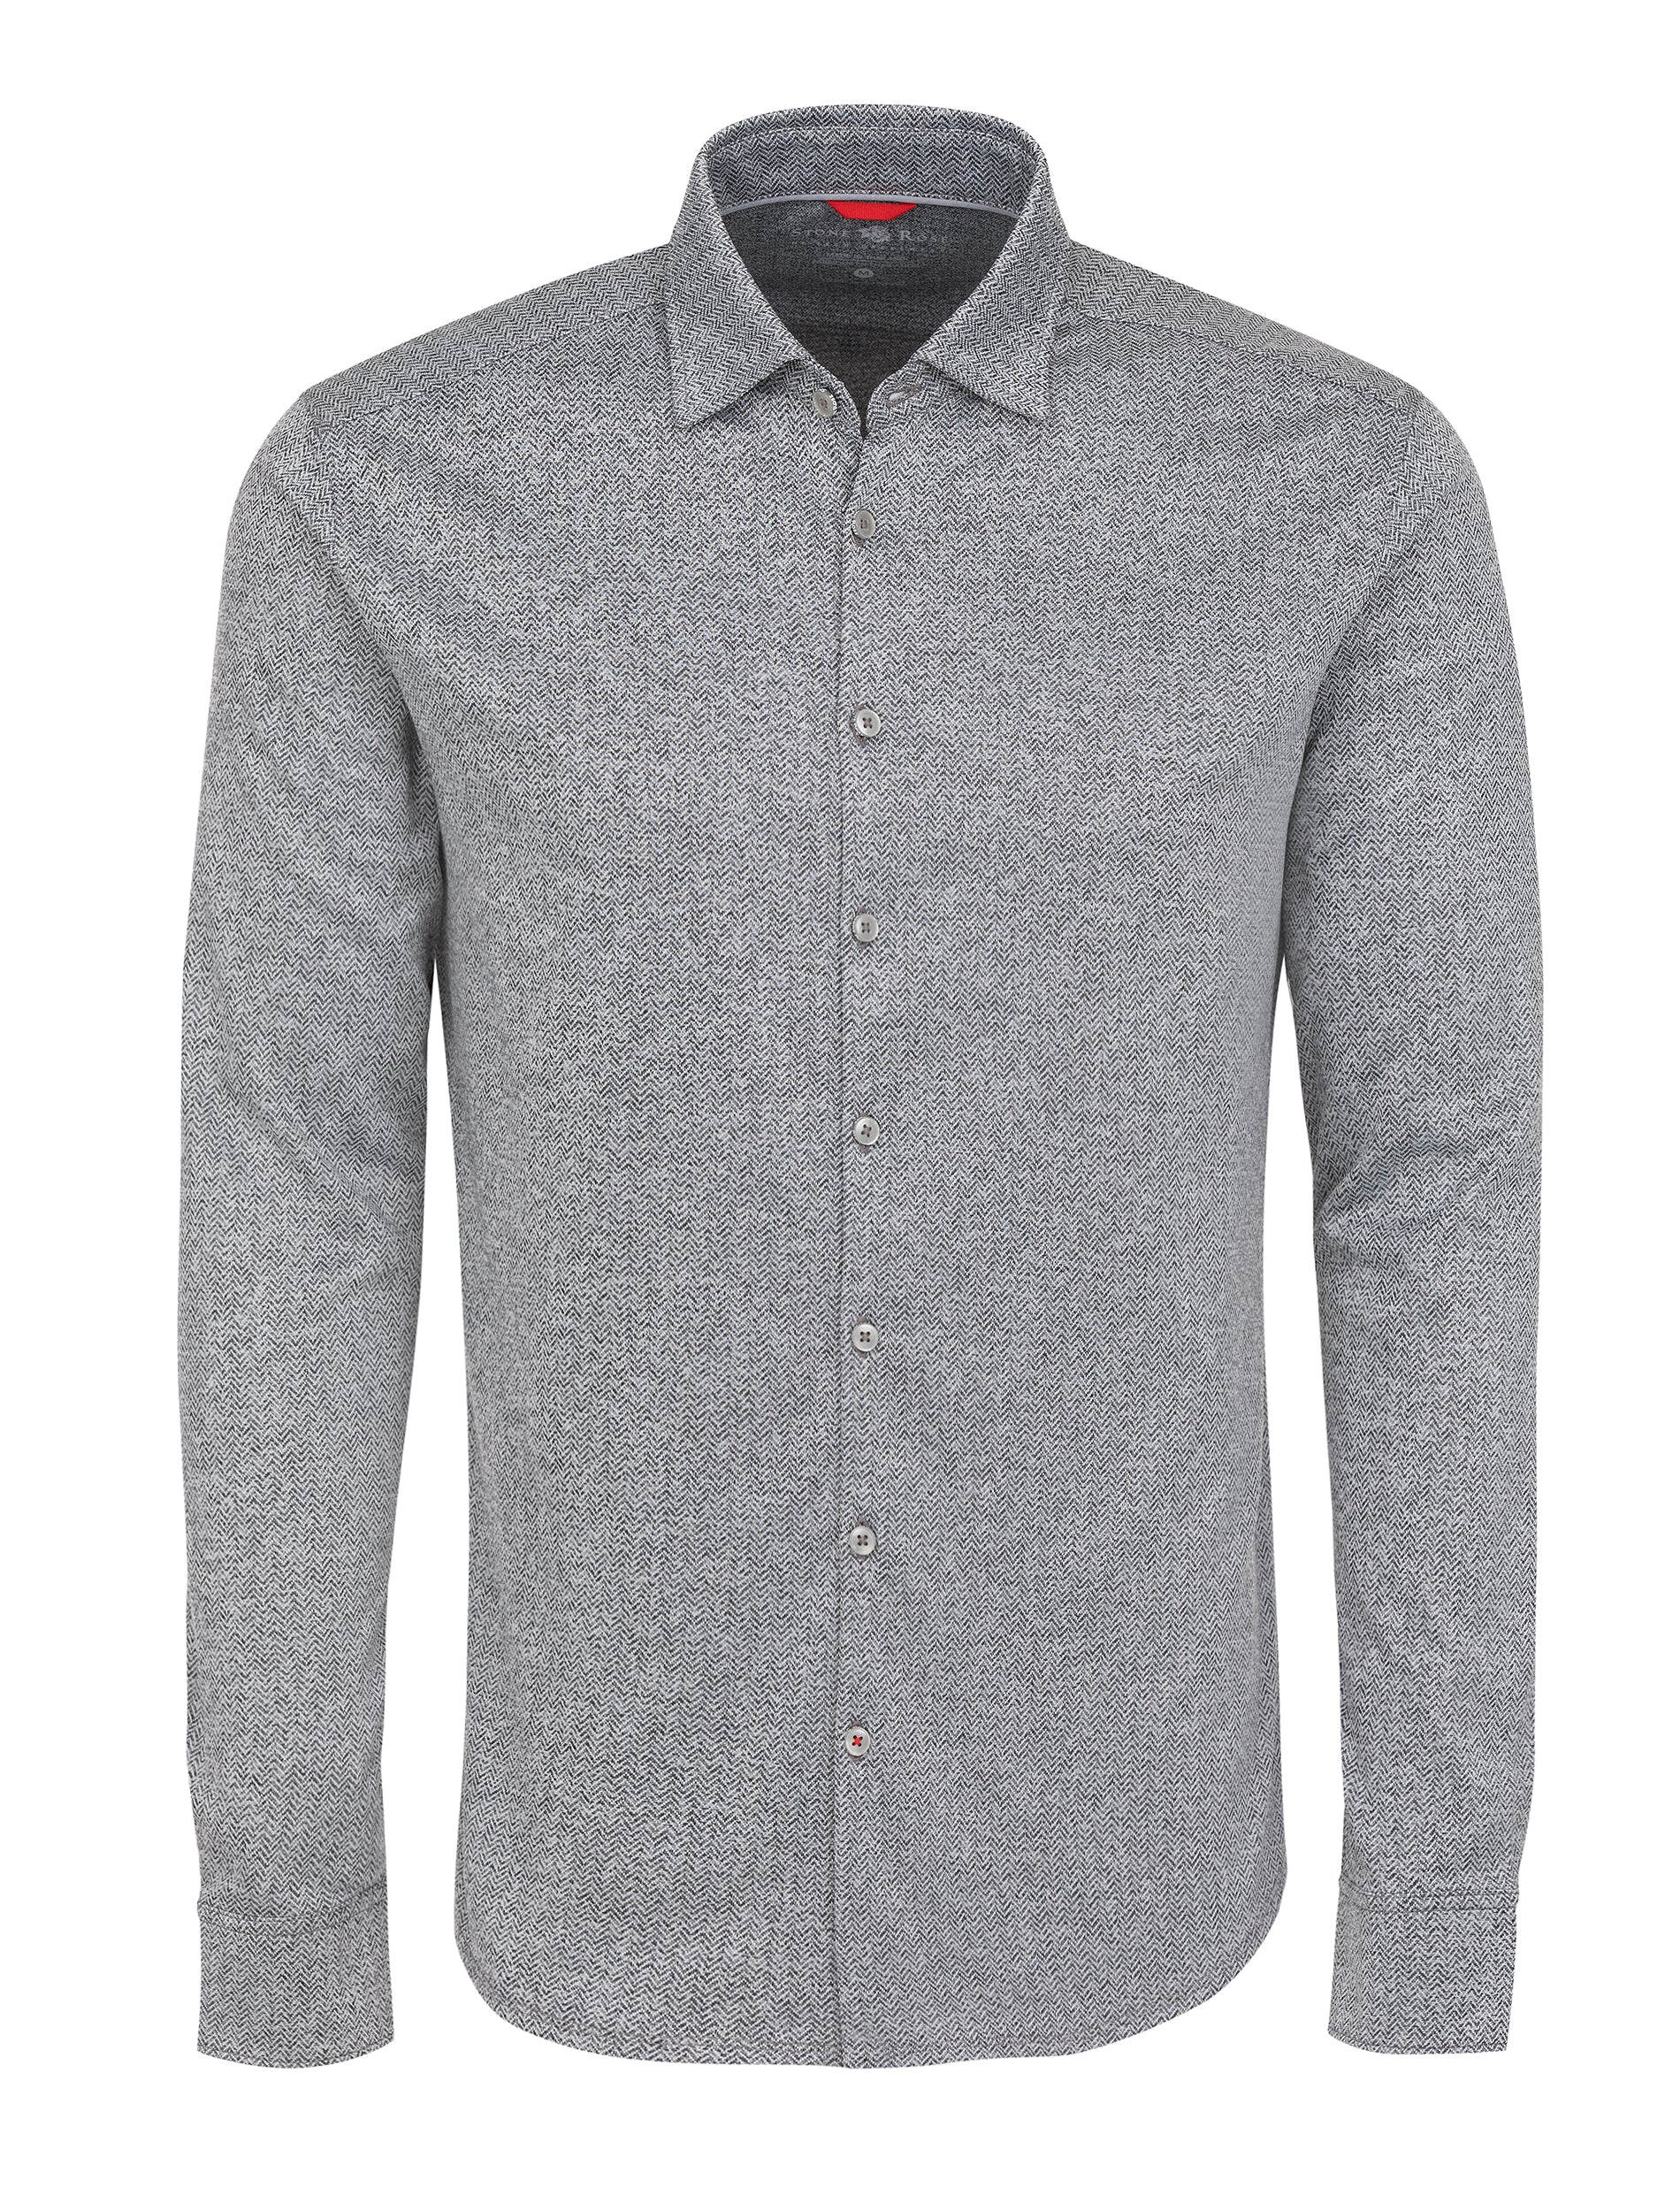 Black Herringbone Knit Performance Long Sleeve Shirt-Stone Rose